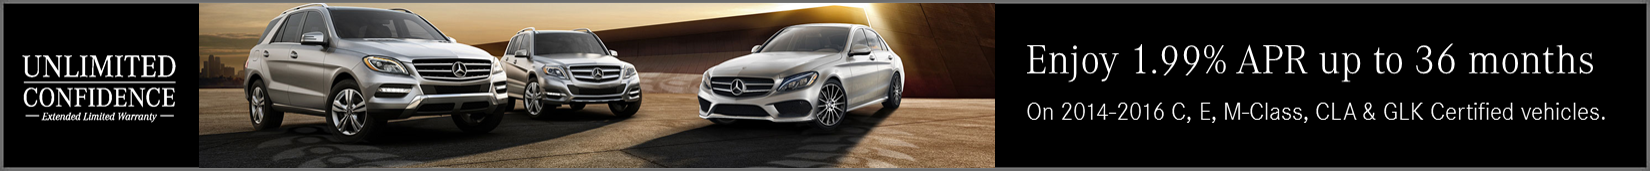 Certified pre owned mercedes benzs mercedes benz of marin for Mercedes benz cpo special offers